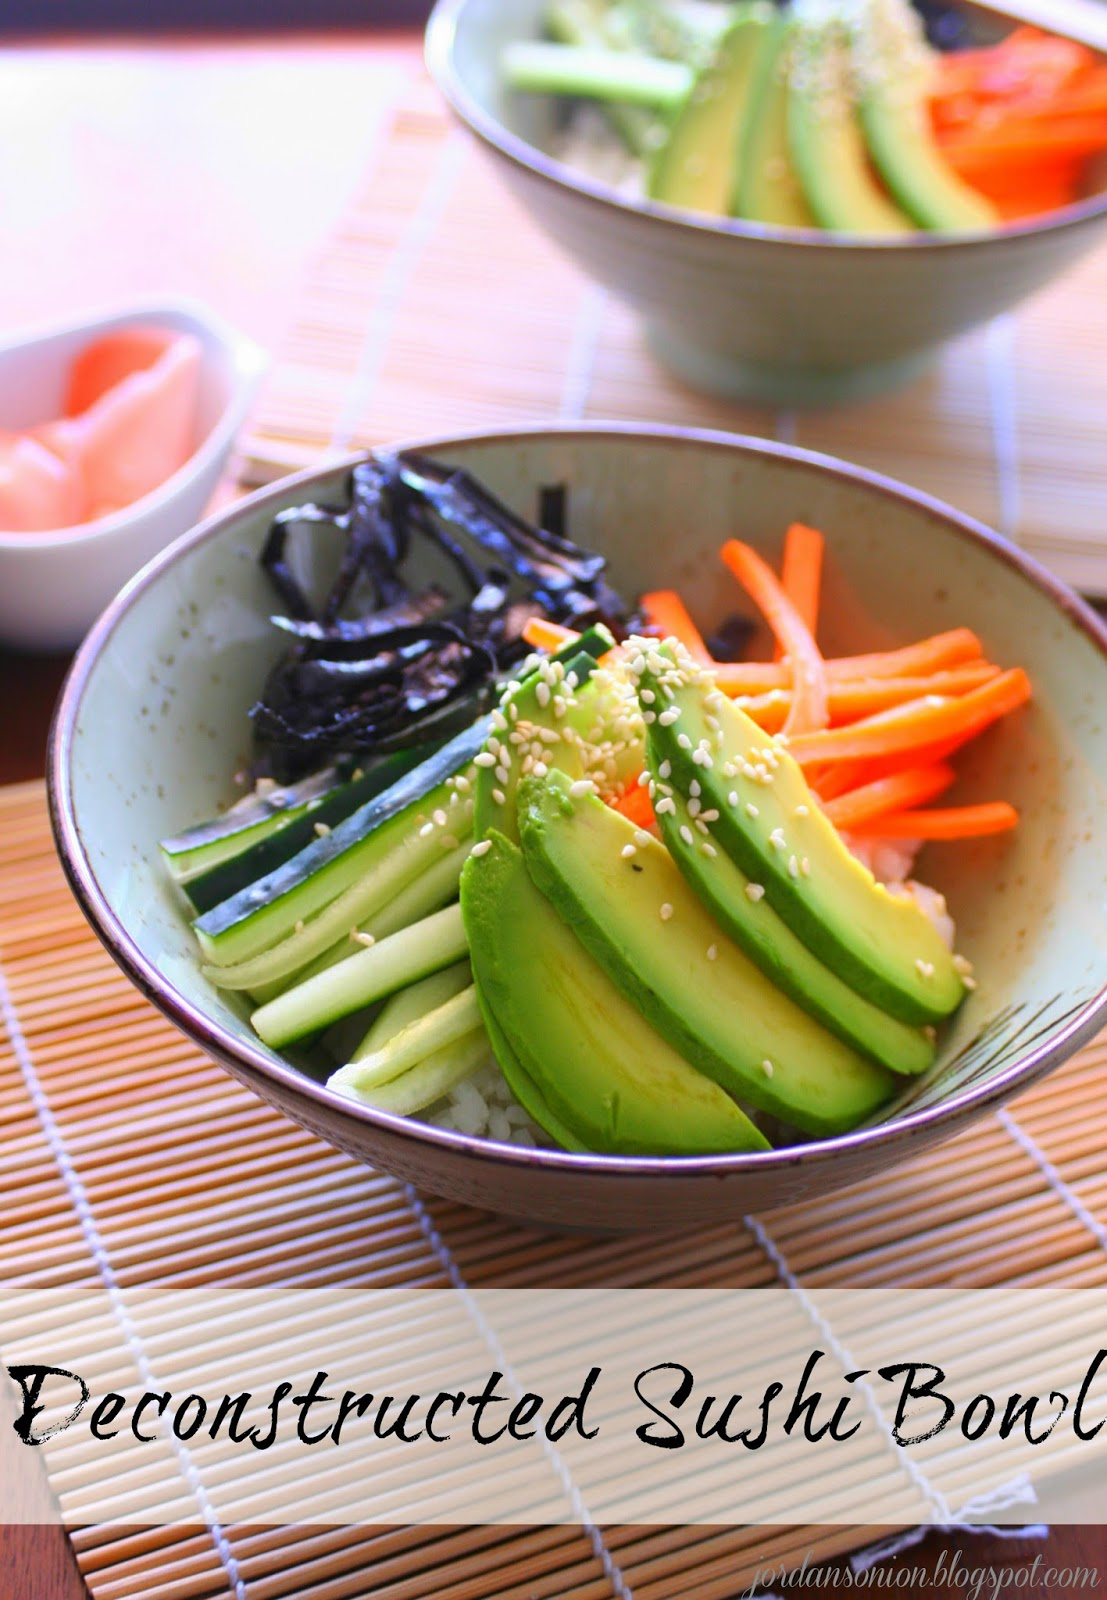 Deconstructed Sushi Bowl | jordansonion.blogspot.com